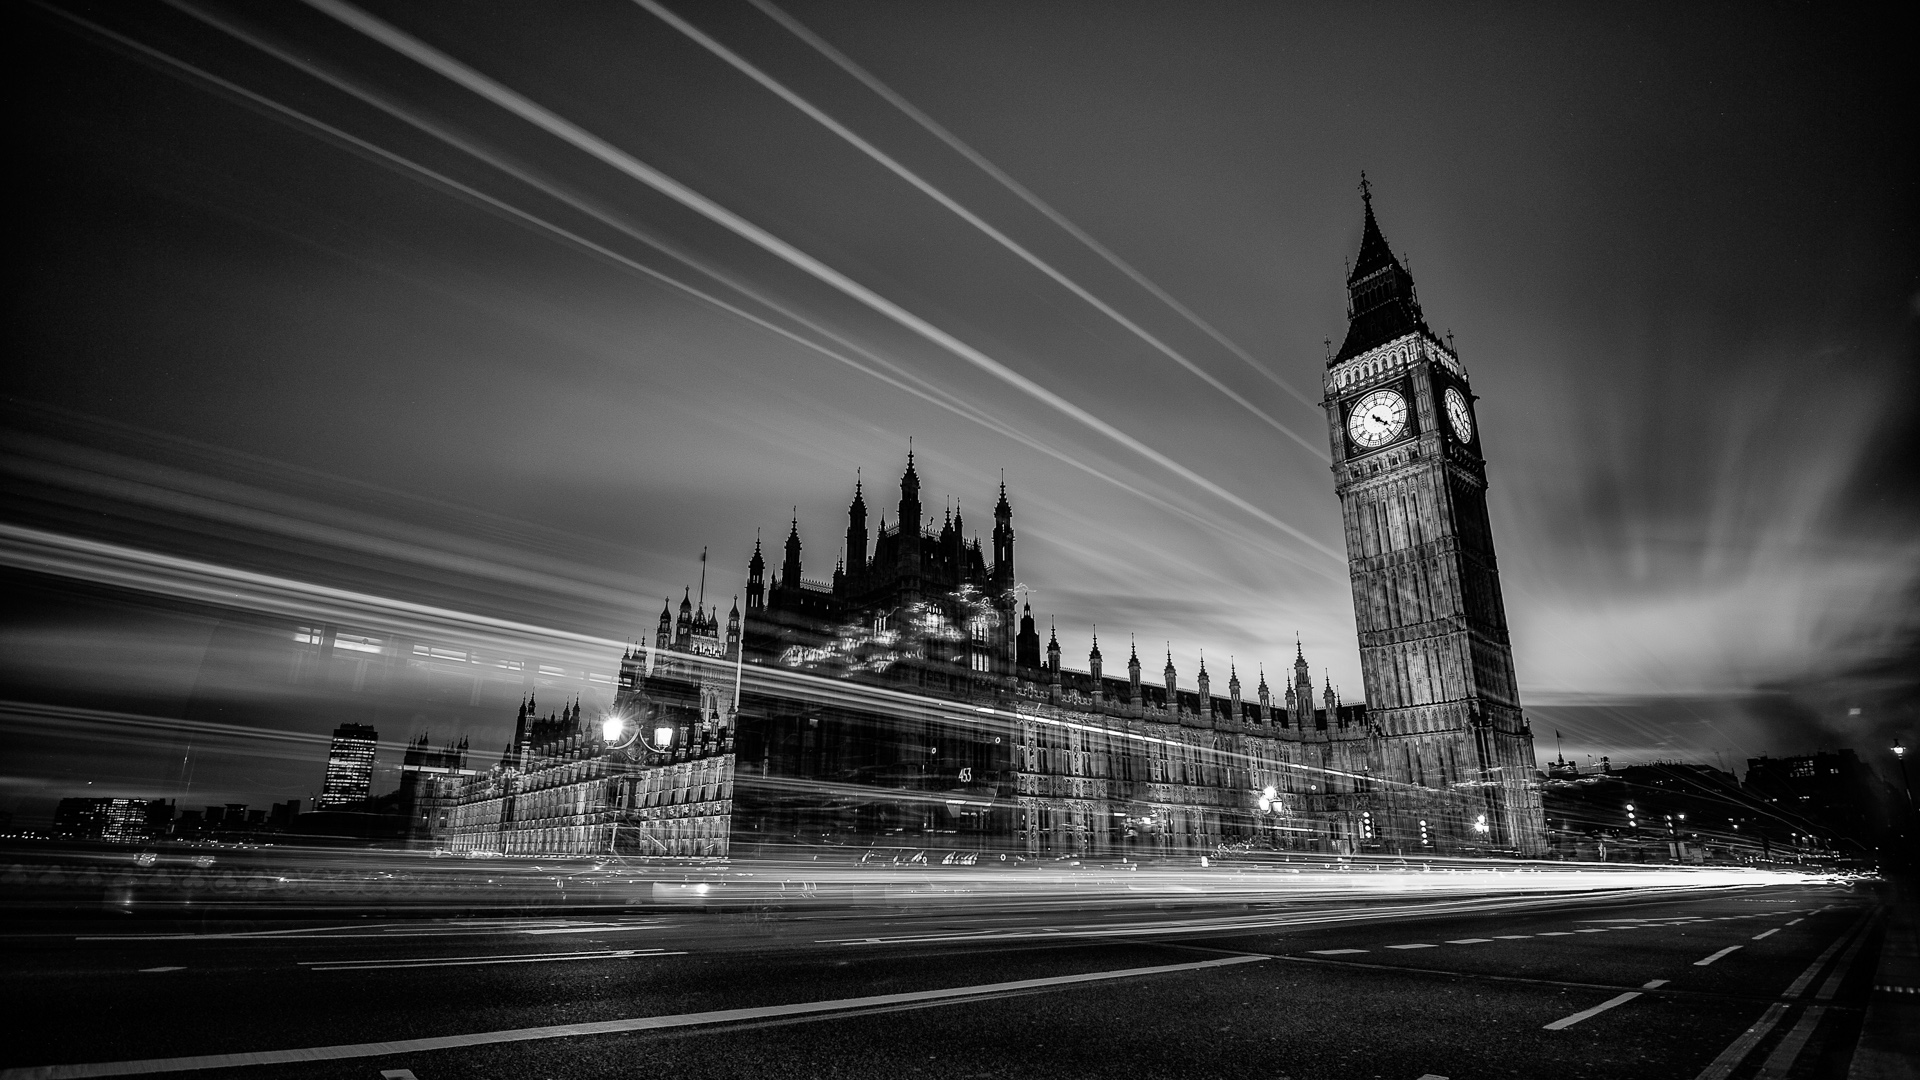 Illusion Wallpaper Iphone London Black And White Wallpapers 37 Wallpapers